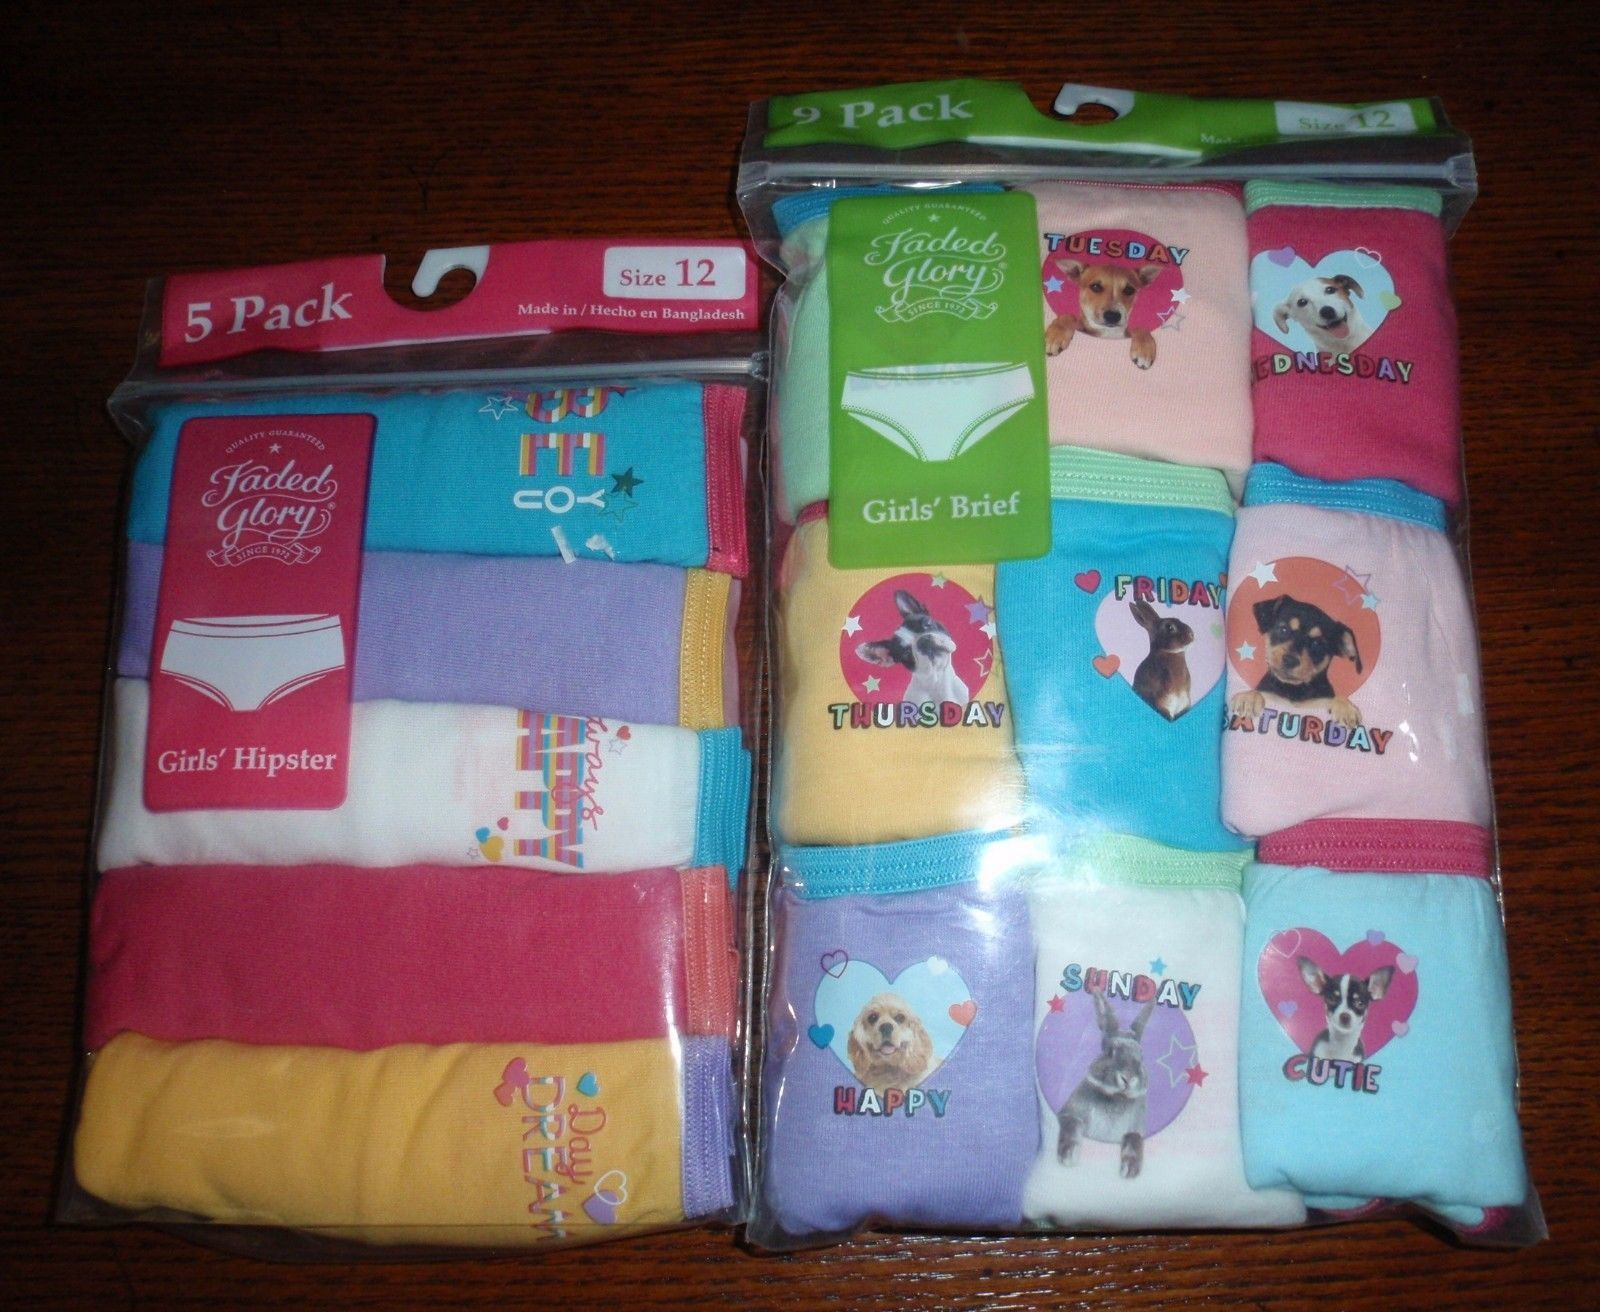 10ff40984e58 Lot of 14 FADED GLORY Girls Brief Week Days and similar items. S l1600